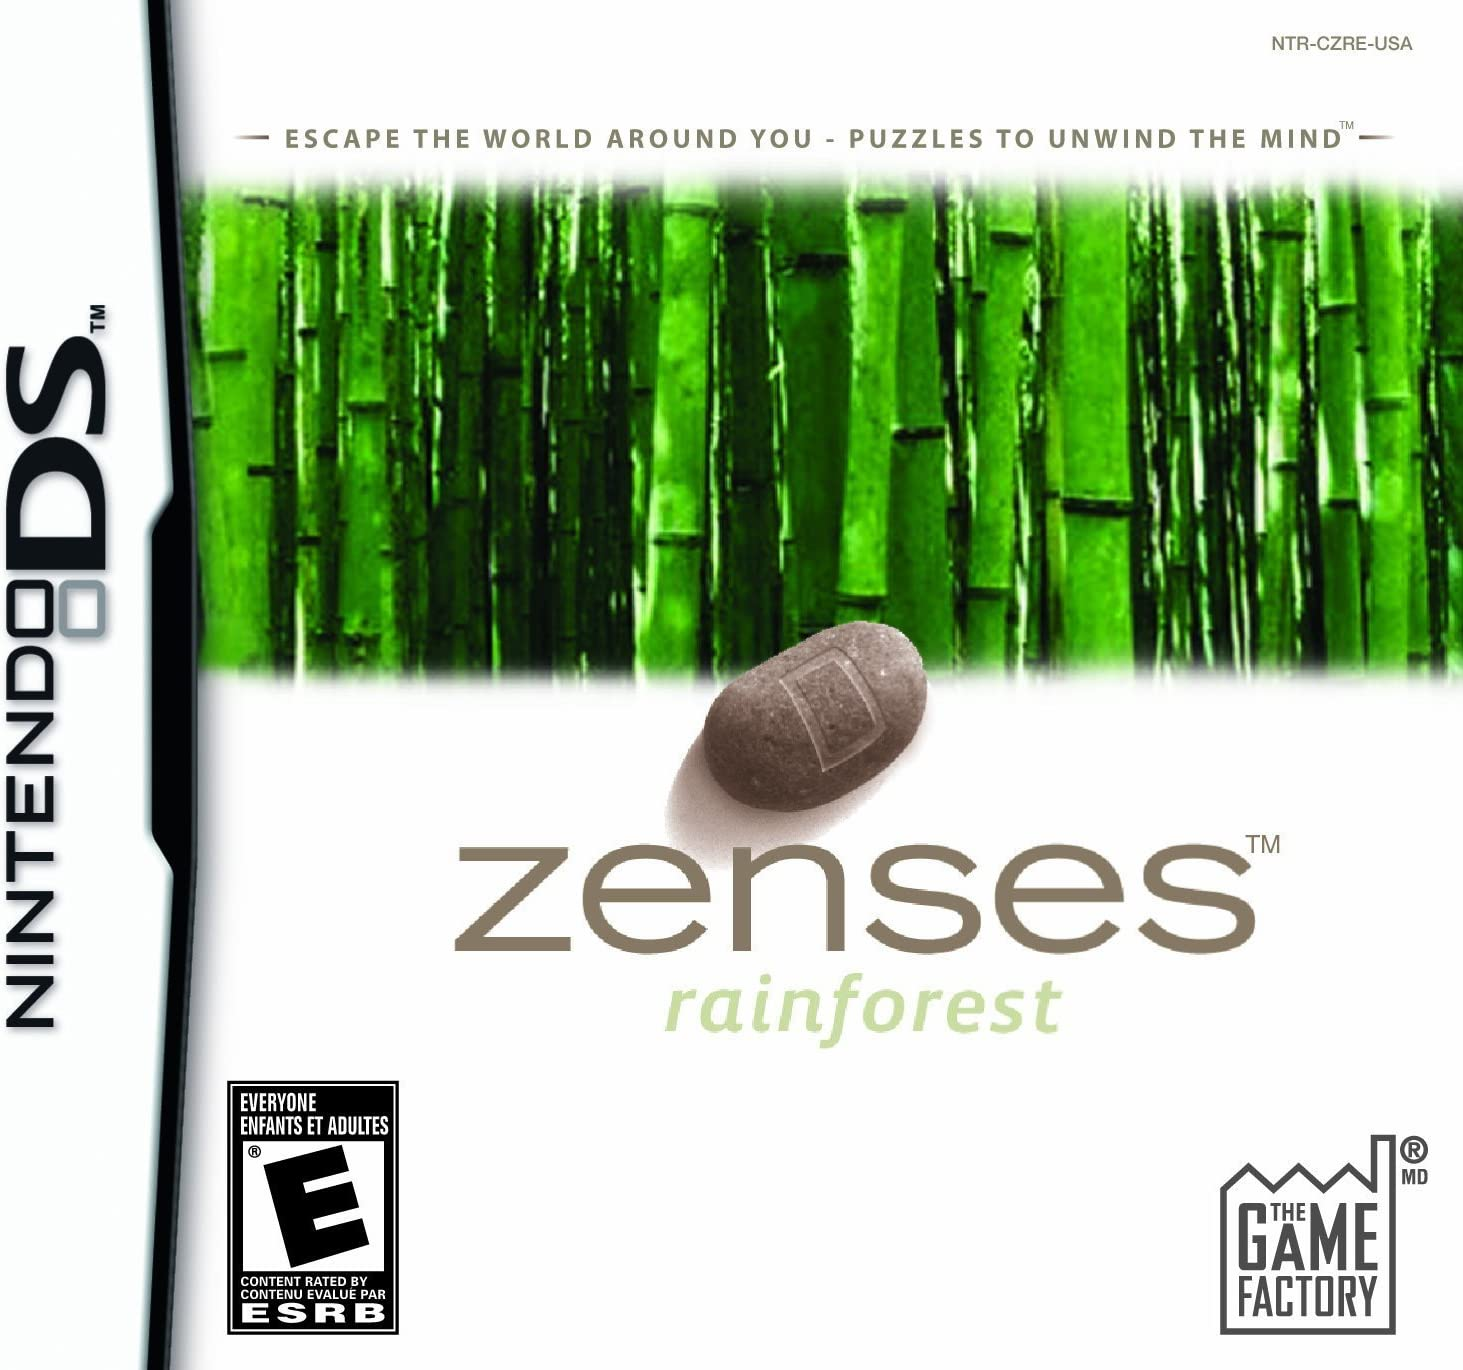 zenses rainforest